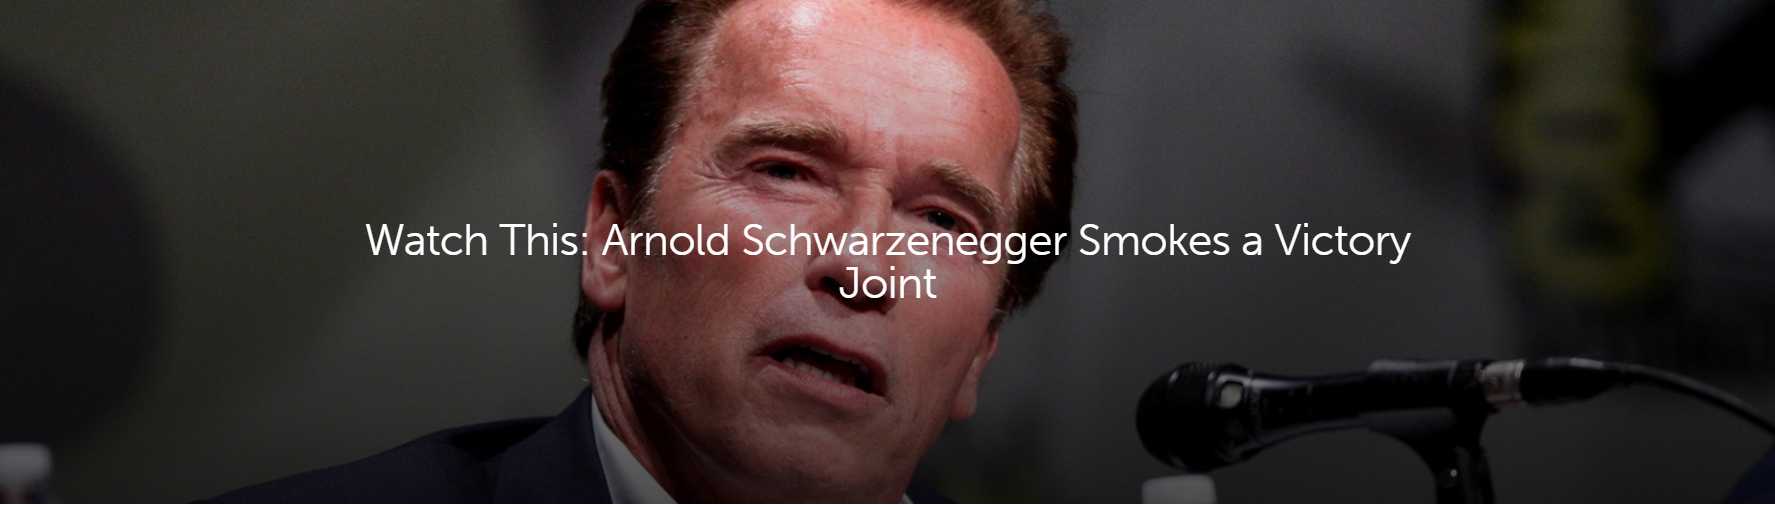 arnold schwarzenegger smokes a victory joint